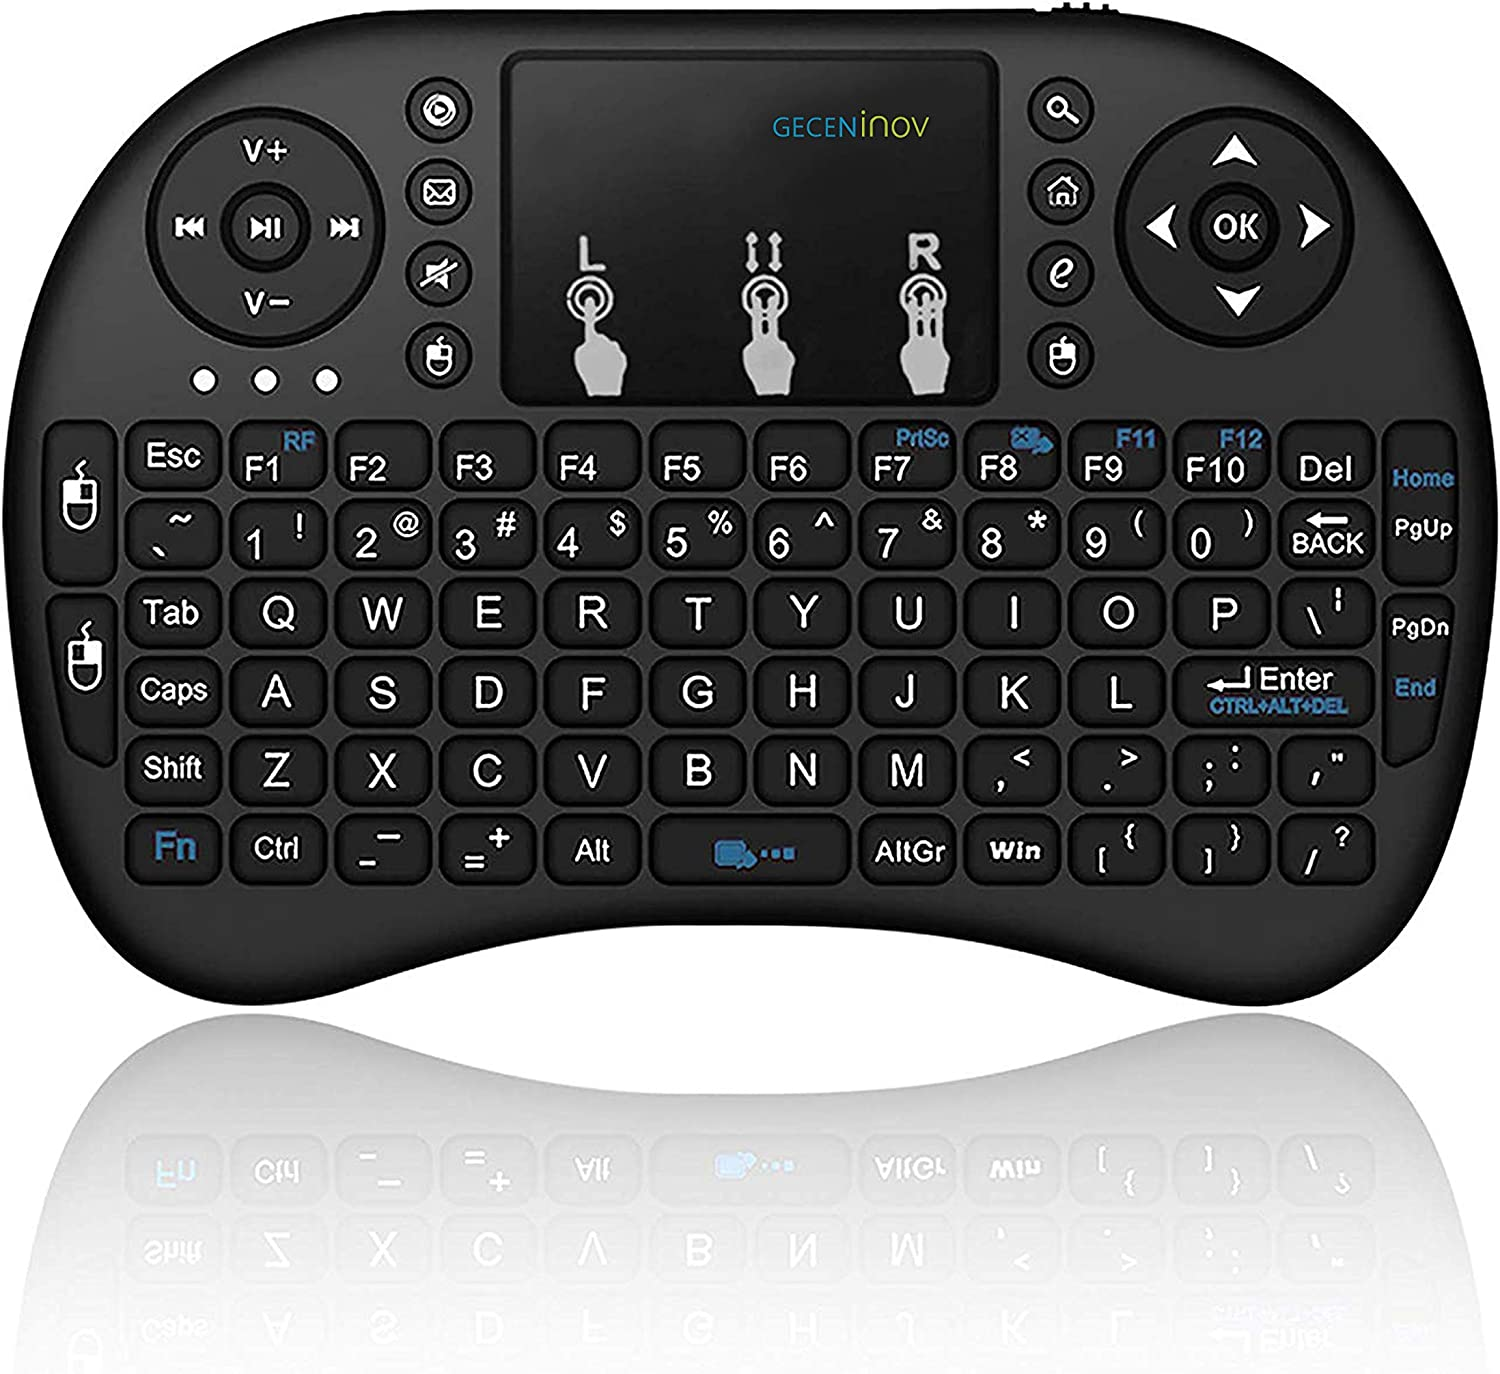 Mini Wireless Keyboard with Touchpad, 2.4Ghz Wireless Mini Handheld Remote Control Keyboard with Rechargeable Battery by Gecen Compatible with, Smart TV, HTPC, PS3,etc.